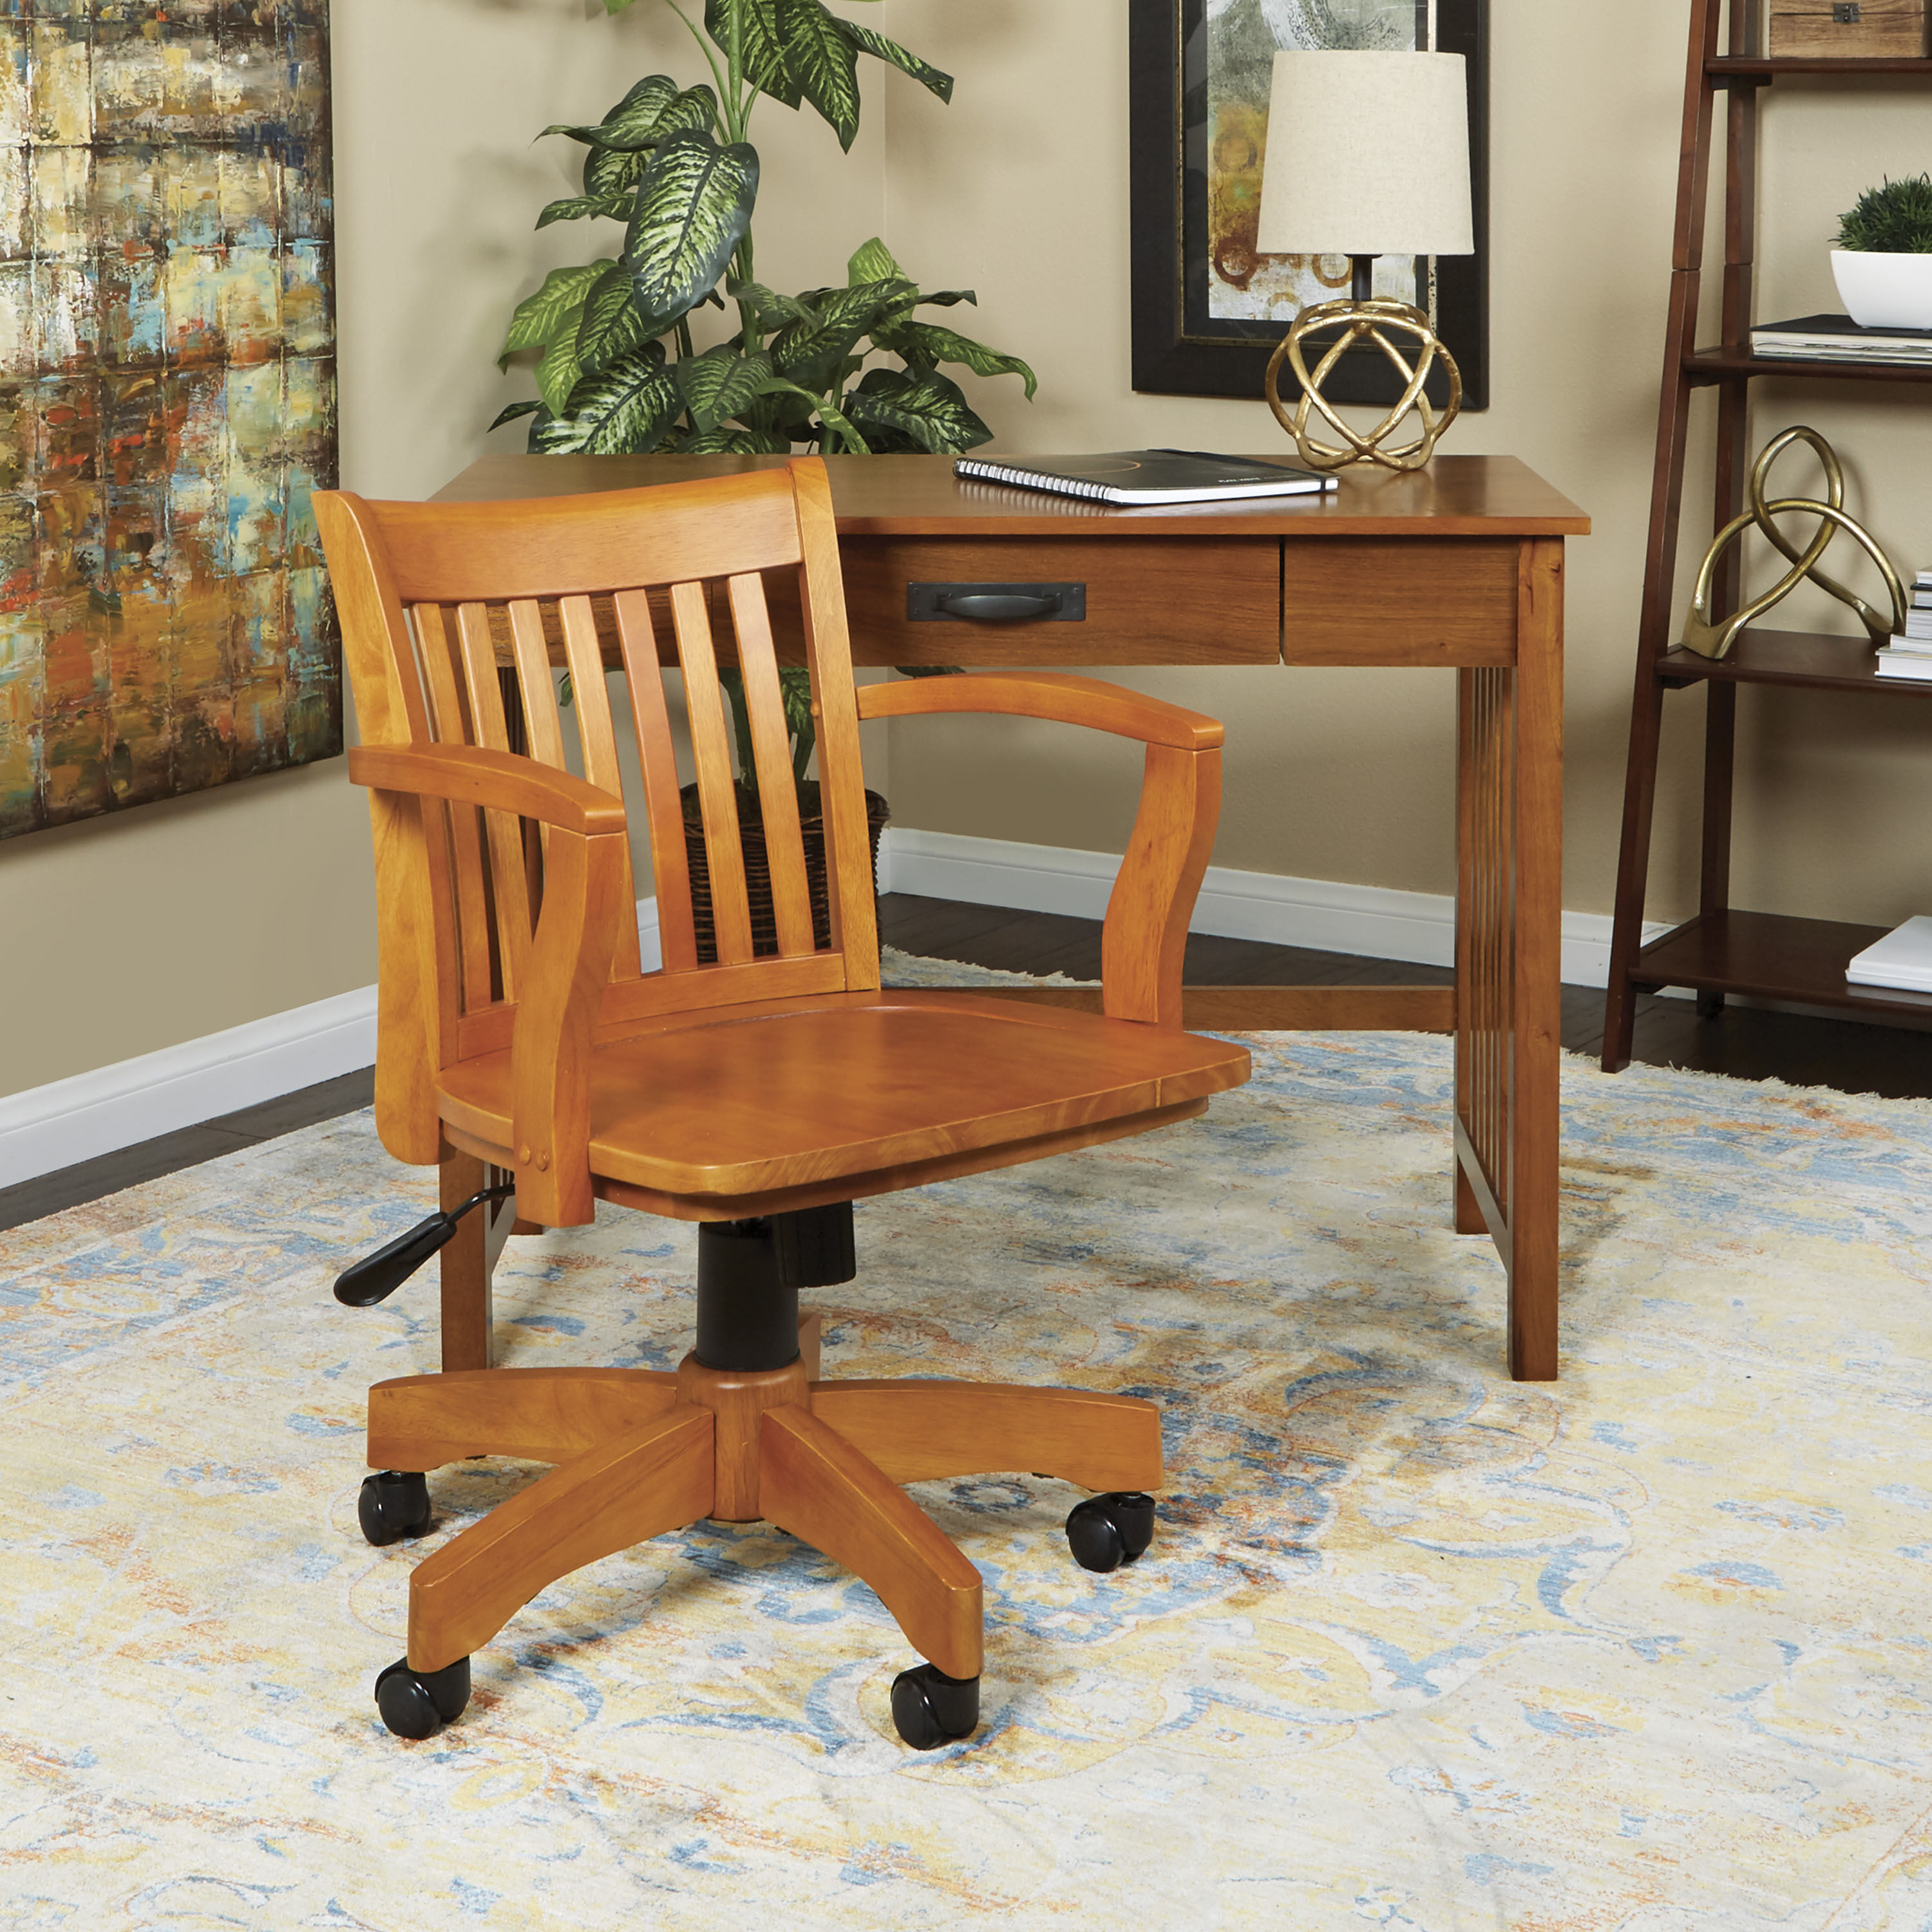 ... Our OSP Designs Deluxe Wood Bankeru0027s Chair With Wood Seat   Fruit Wood  Is On Sale